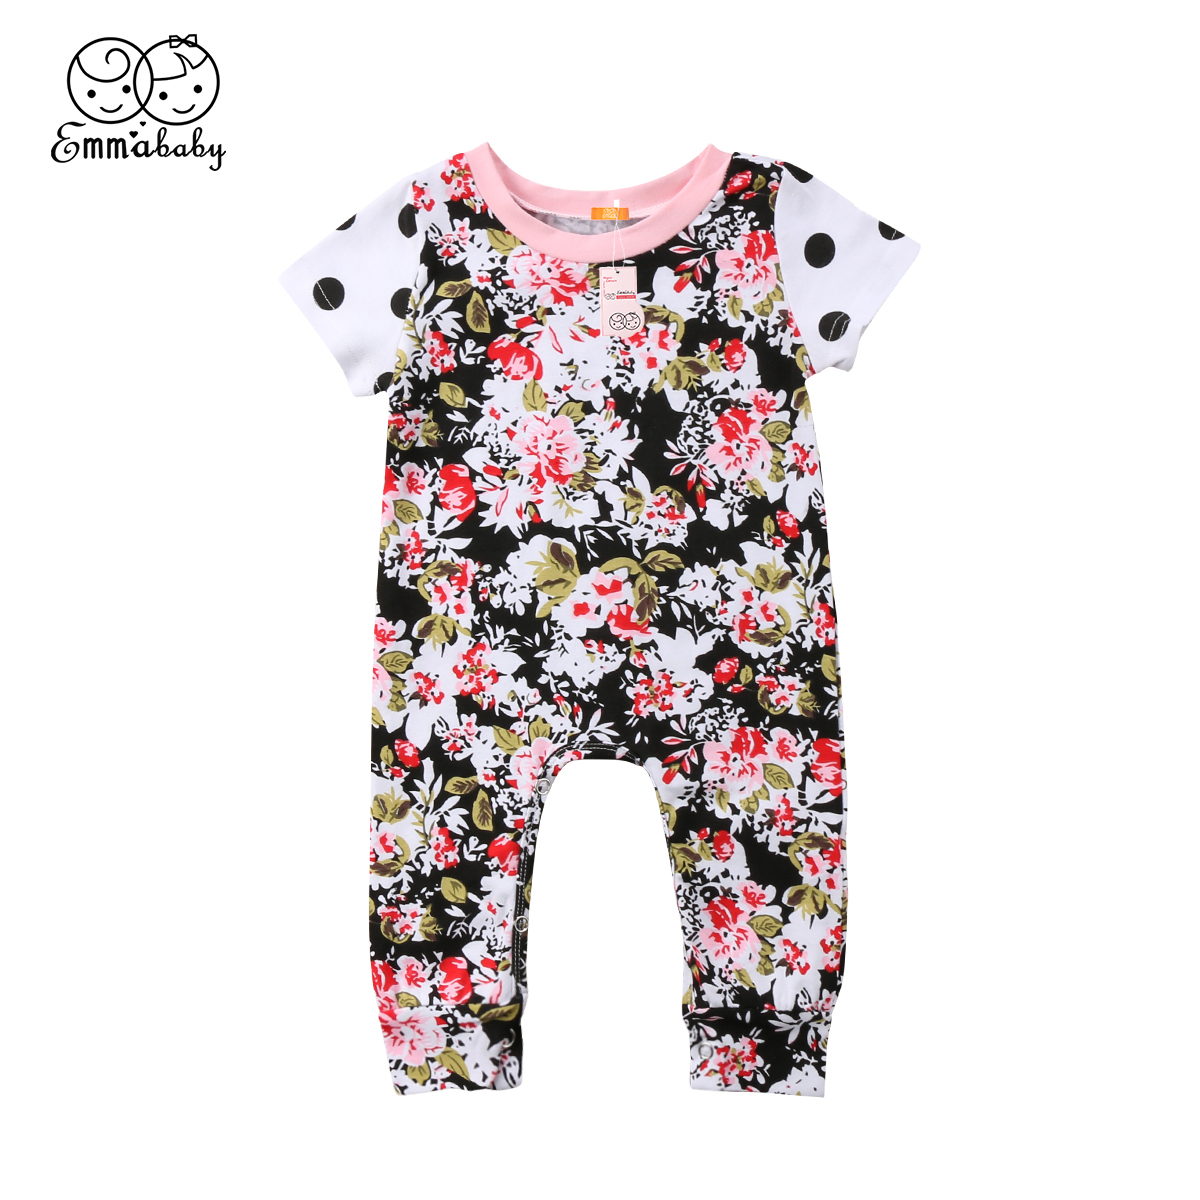 Summer new lovely Newborn Toddler Baby Girl Floral printed short sleeve Romper Jumpsuit One Piece Polka dot casual kid Outfit